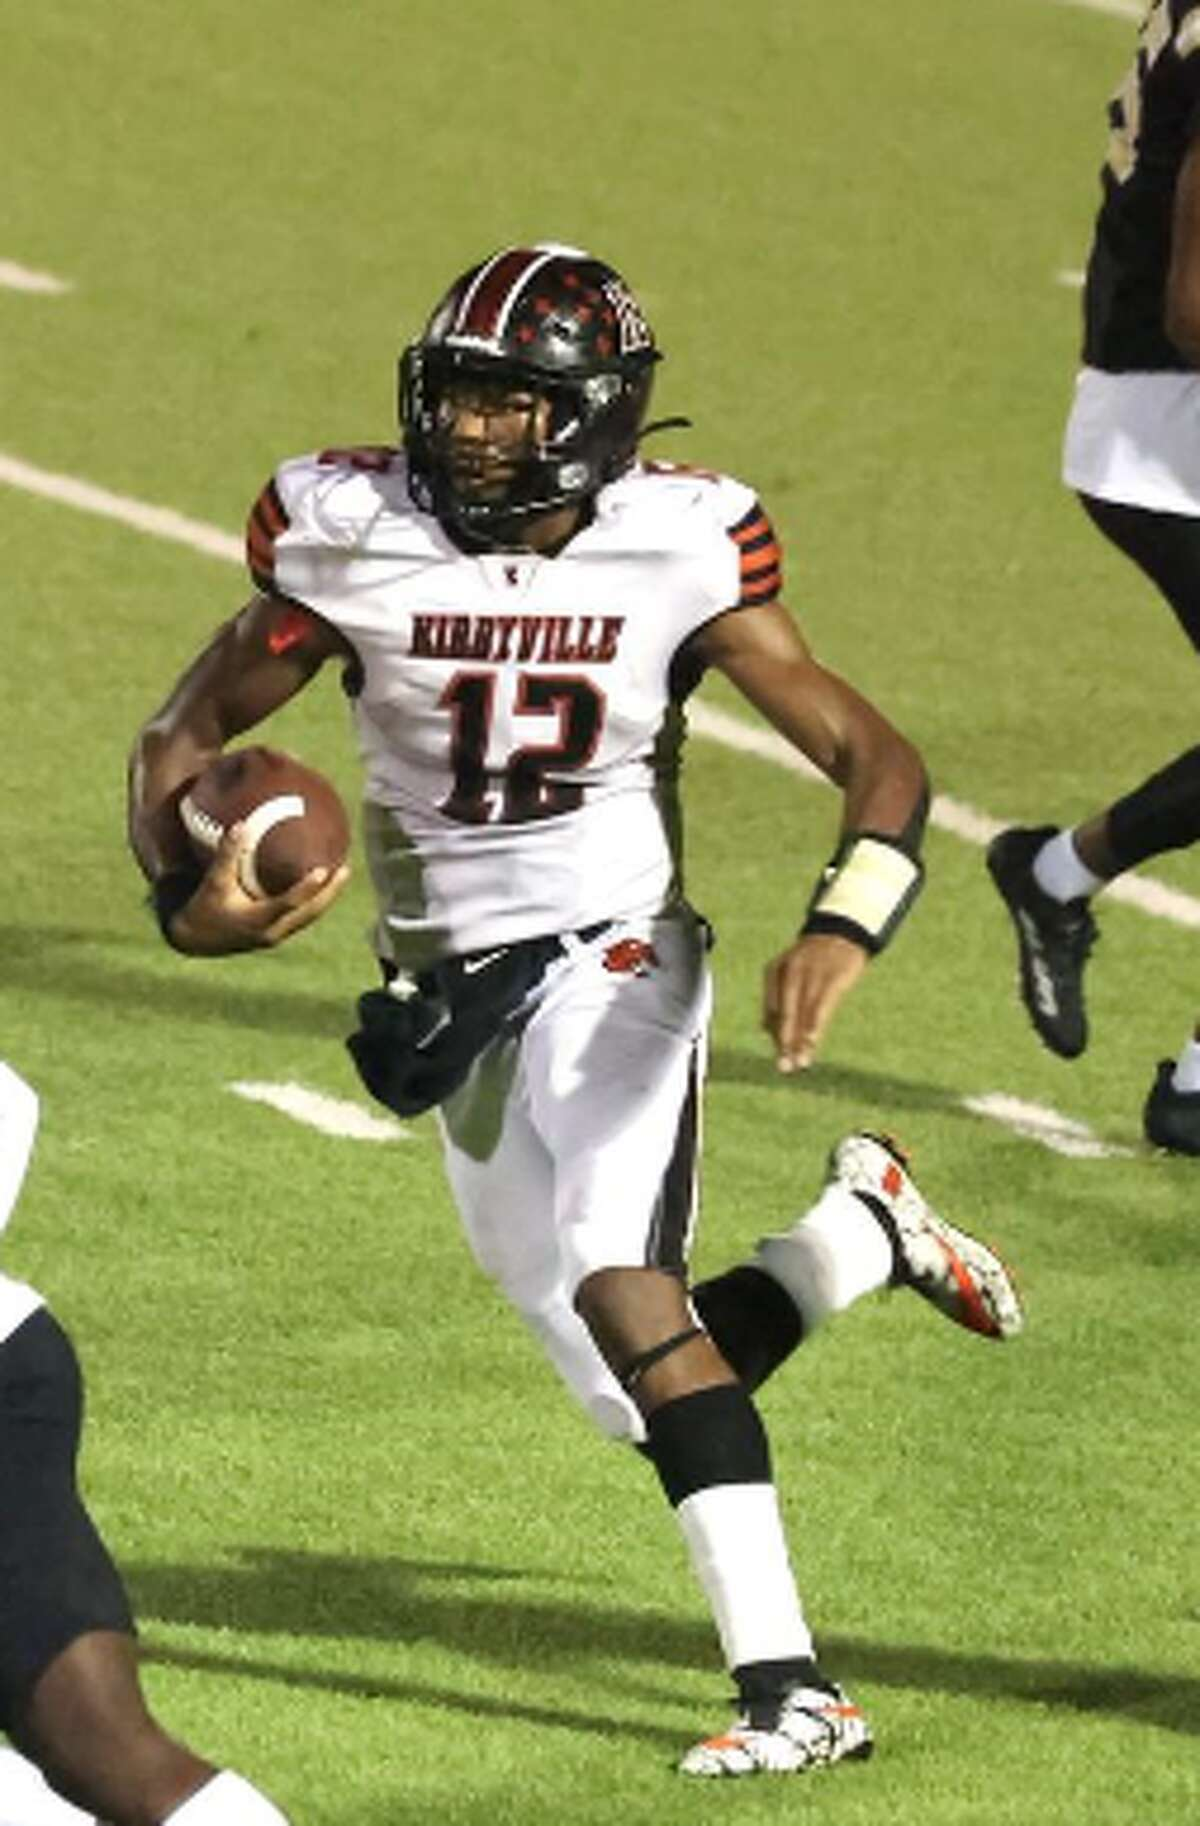 Kirbyville quarterback Braydon Mahathay looks for room to run in Friday's game against Woodville.